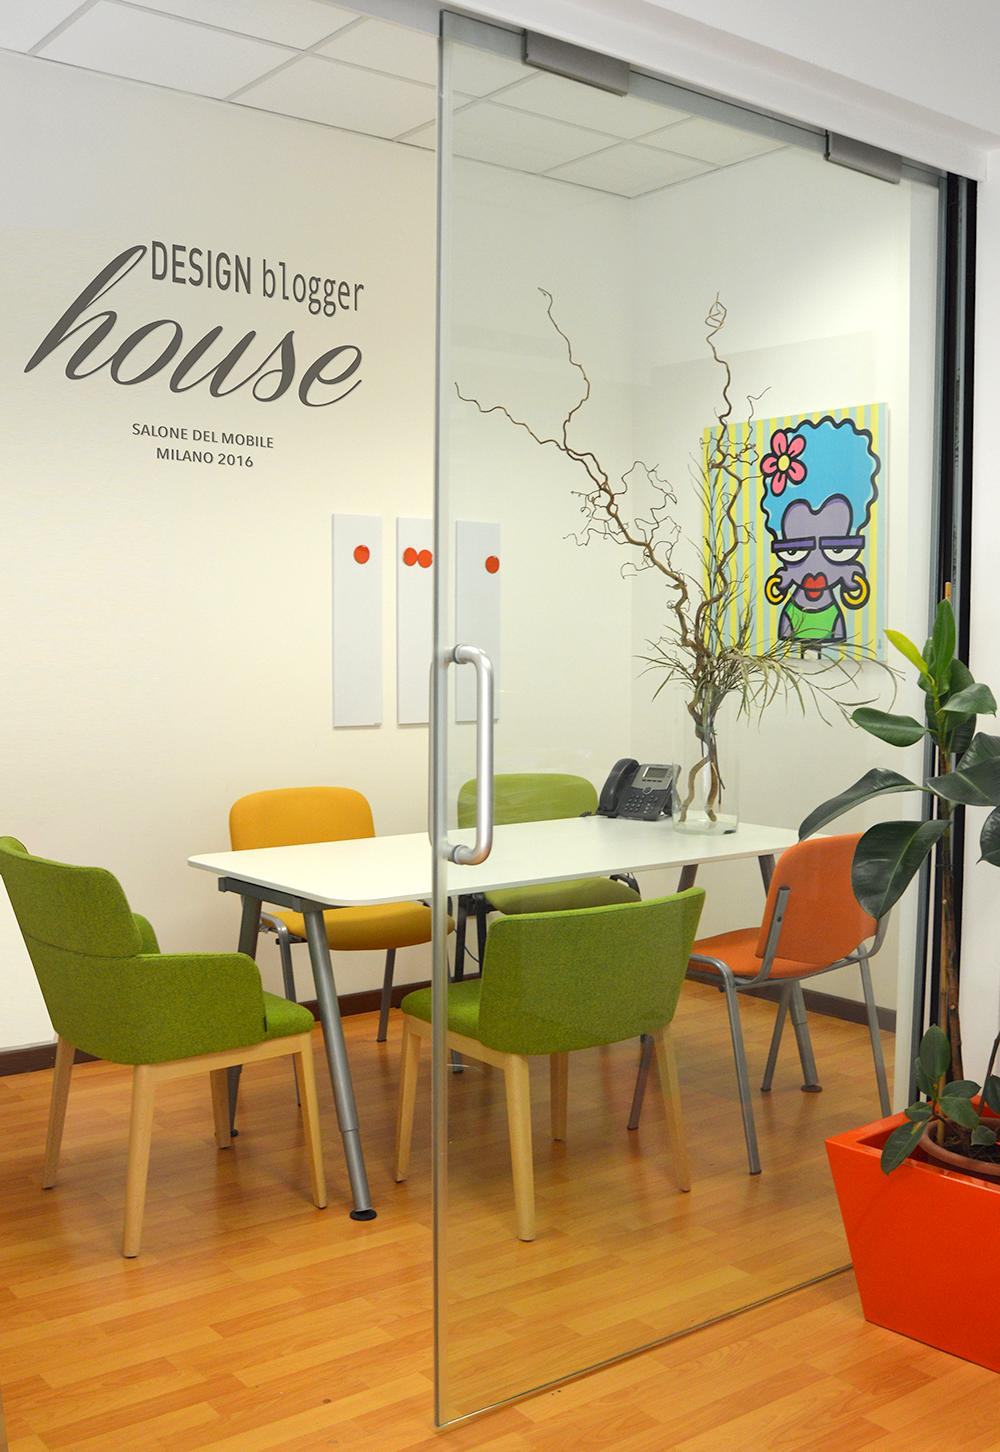 design blogger house